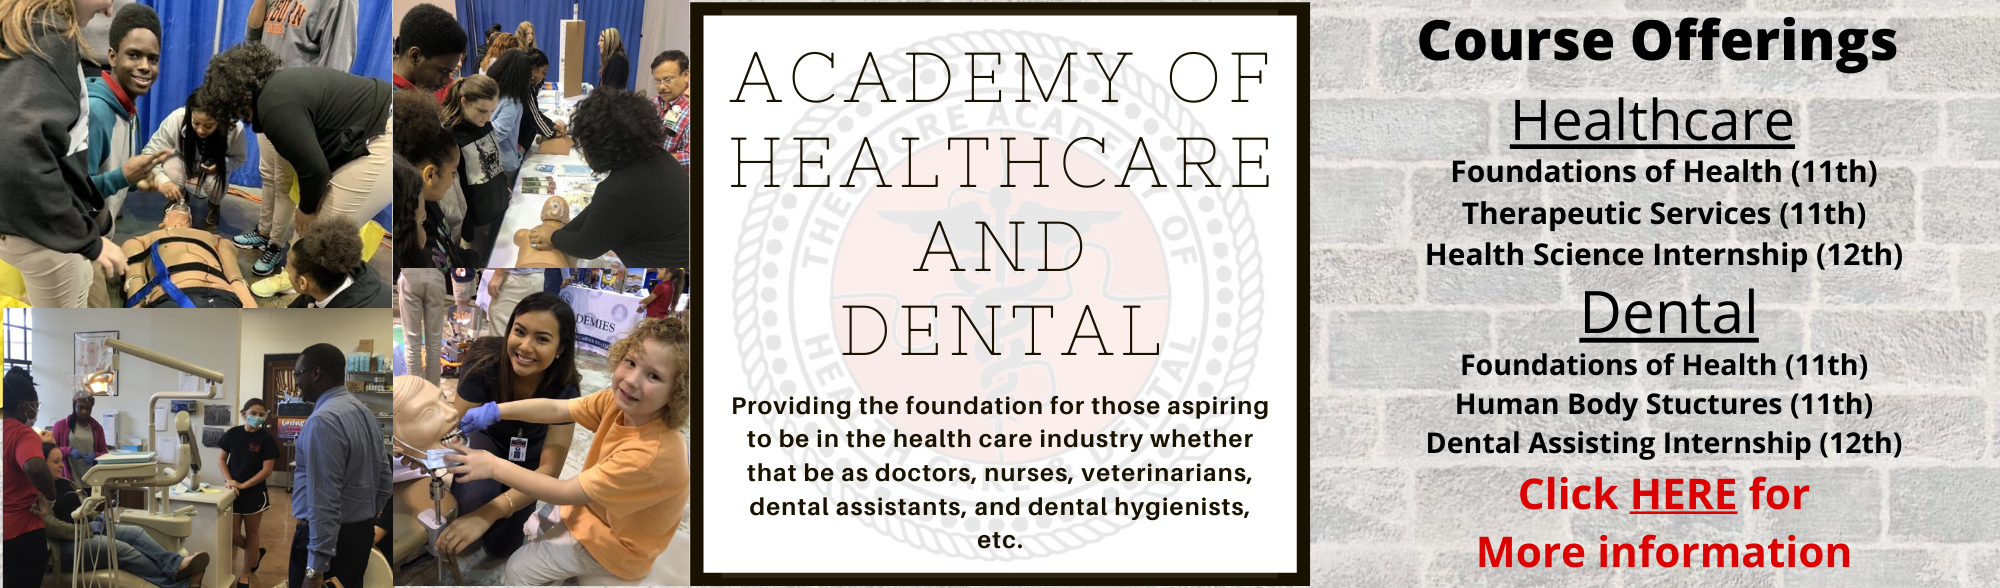 Healthcare and Dental